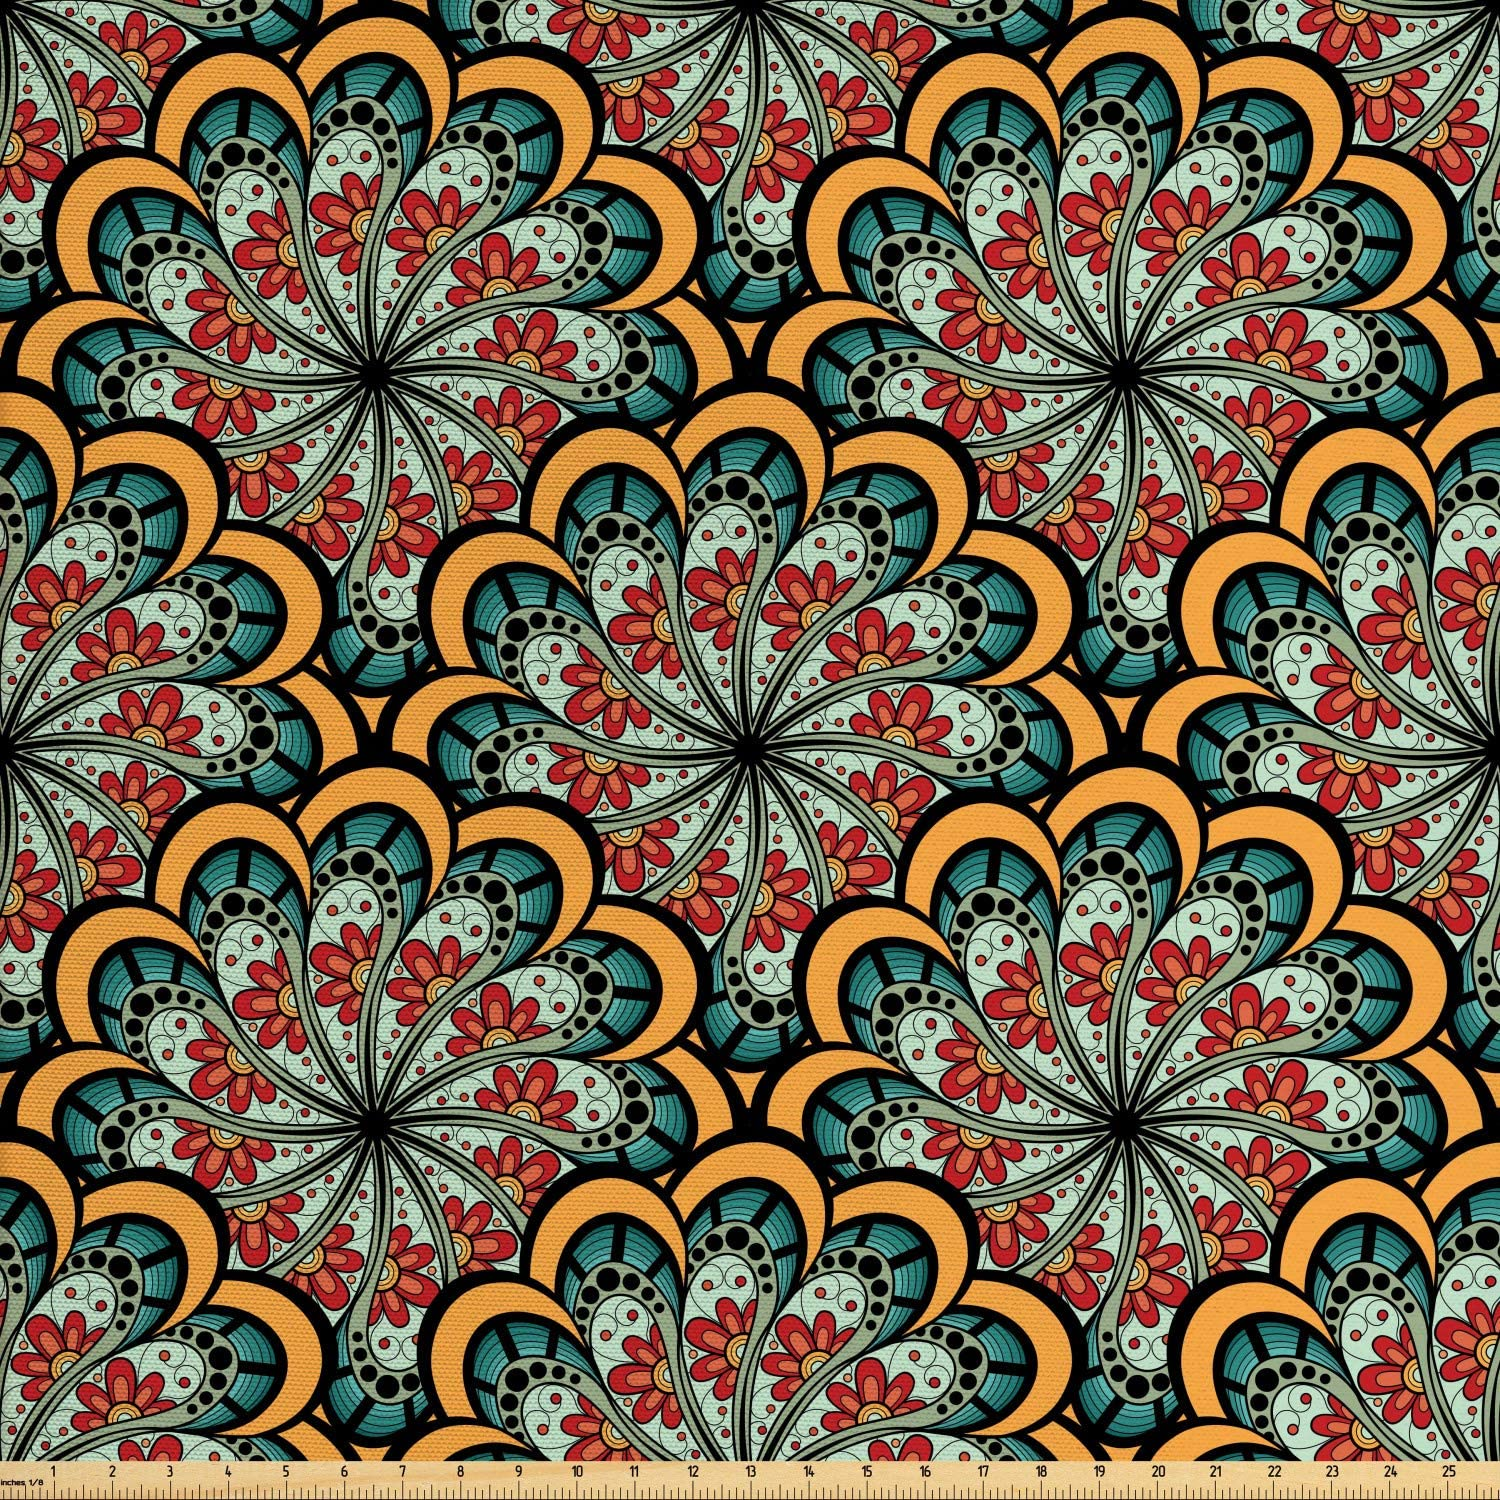 Ambesonne Mandala Fabric by The Yard, Flourishing Nature Design with Paisley Motif Bohemian Pattern, Decorative Fabric for Upholstery and Home Accents, 3 Yards, Marigold Seafoam